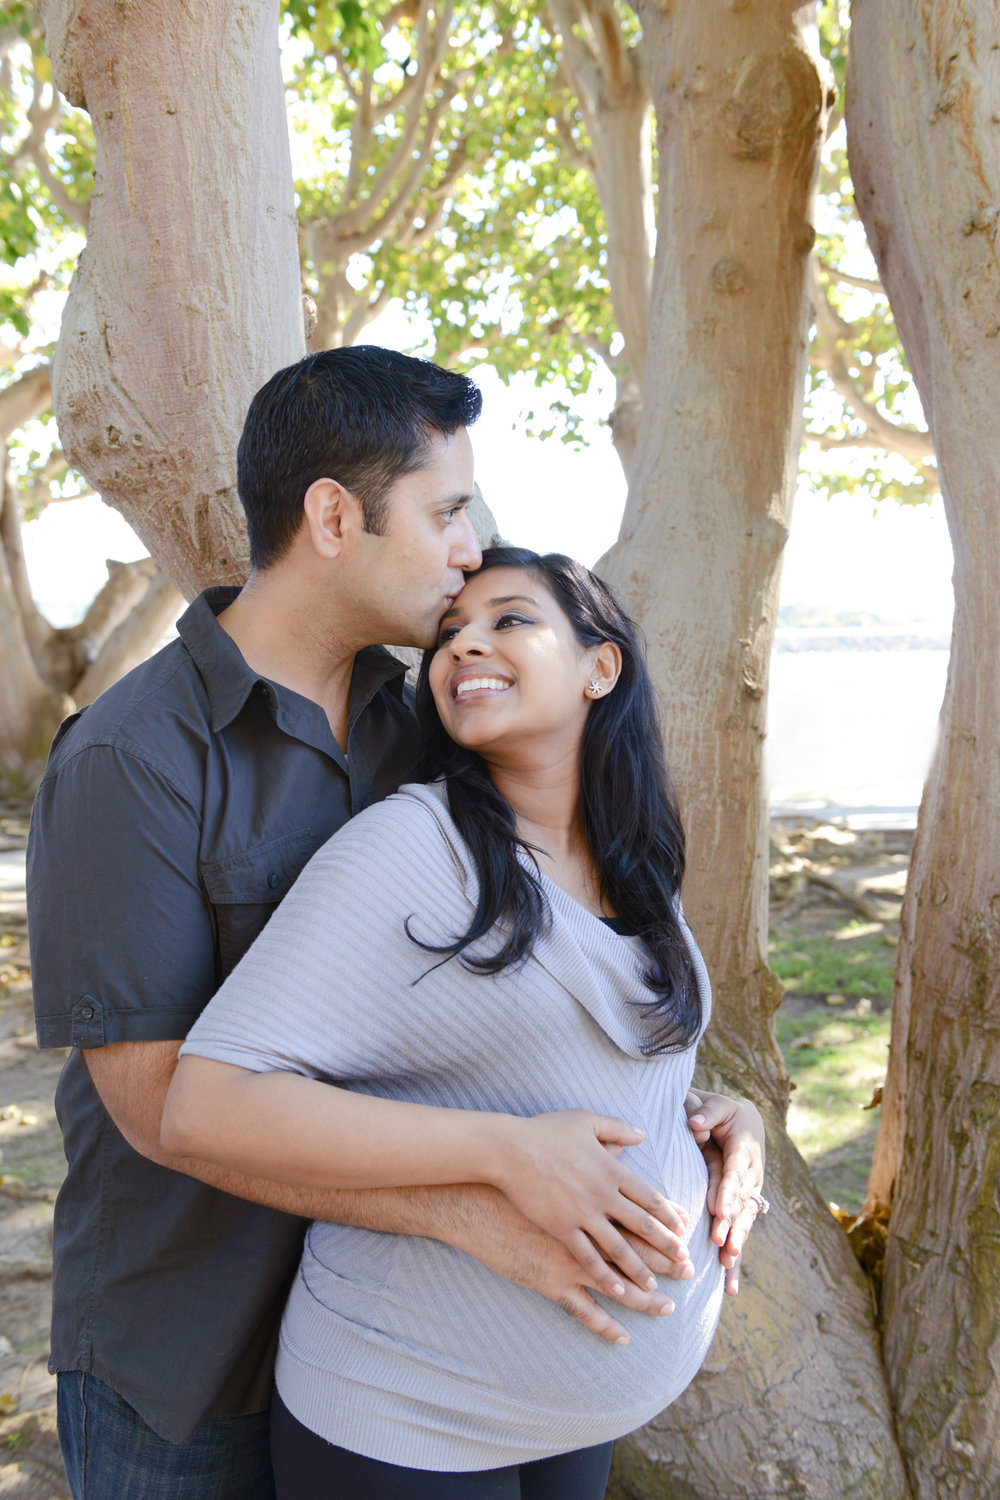 arthousephotographs.com | Los Angeles Family Photographer | Los Angeles Pregnancy Photographer | Southern California Family Photographer | Arthouse Photographs